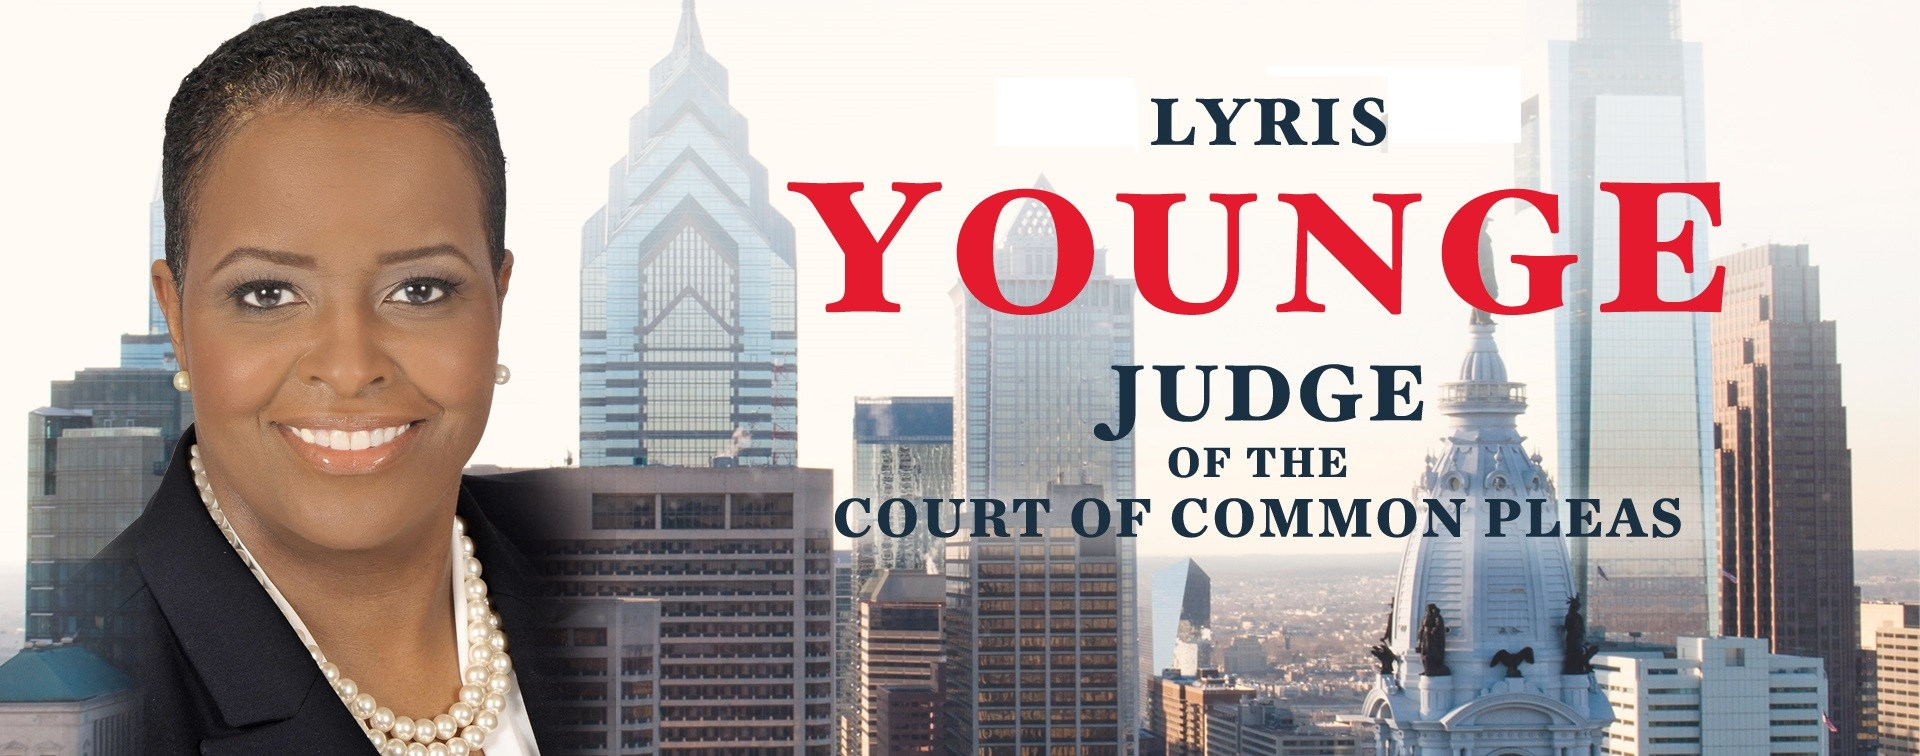 Lyris Younge Judge